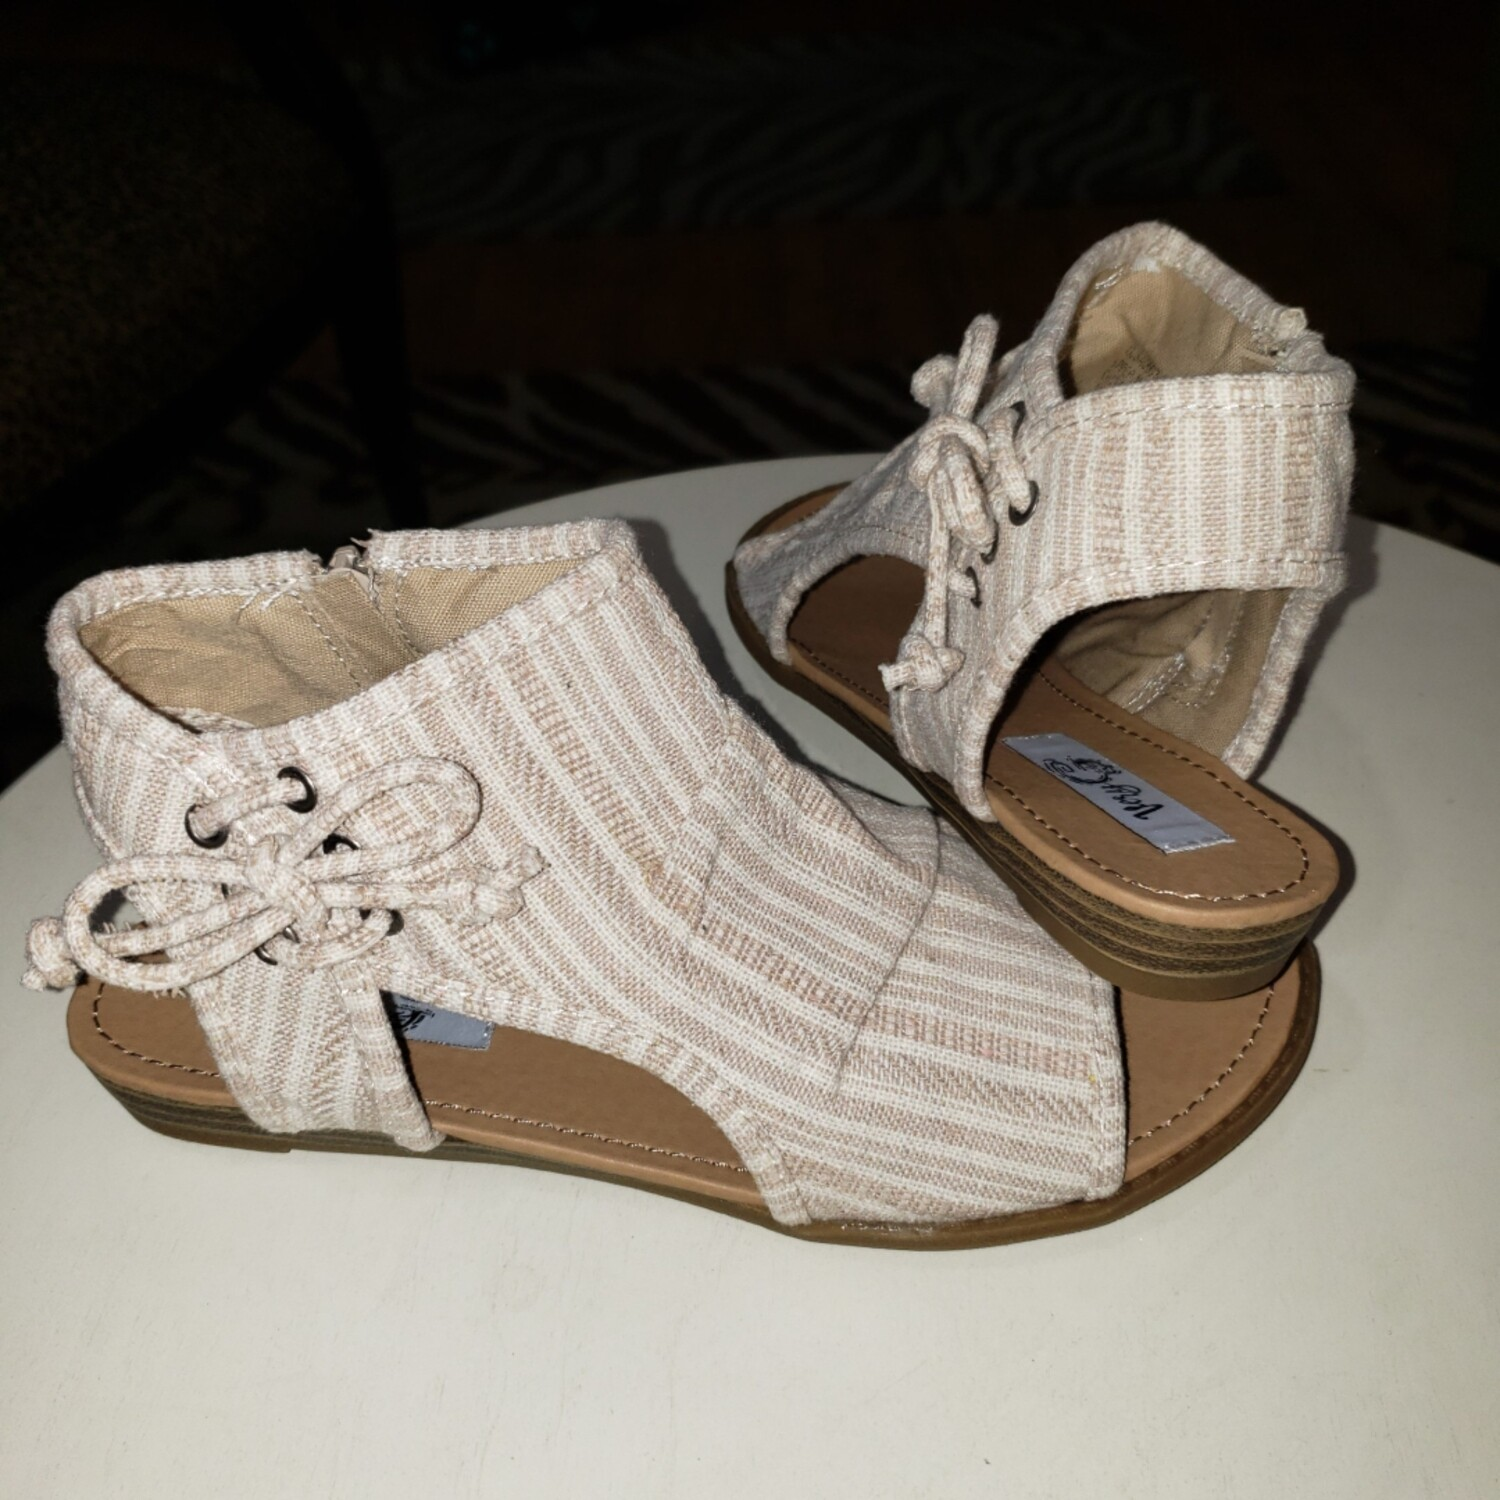 Lucia Ankle Sandals